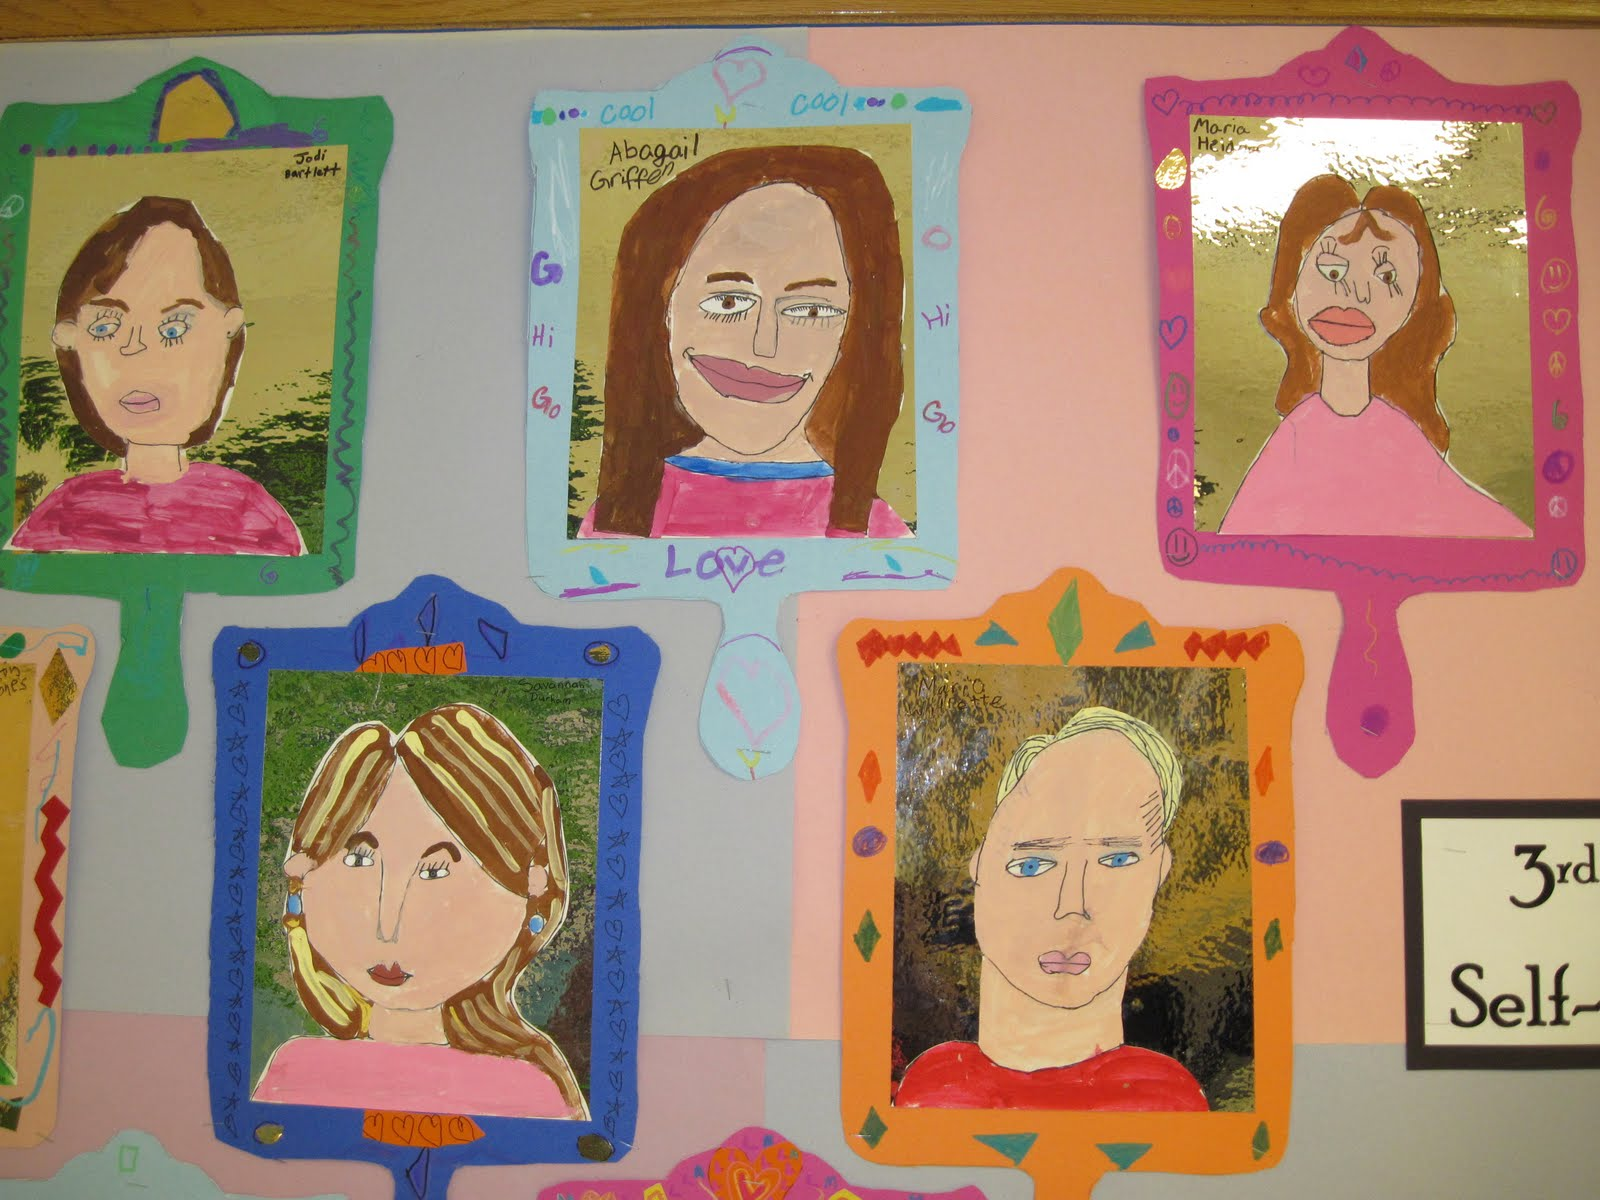 Line Art Lessons For Elementary : There s a dragon in my art room self portraits by awesome rd